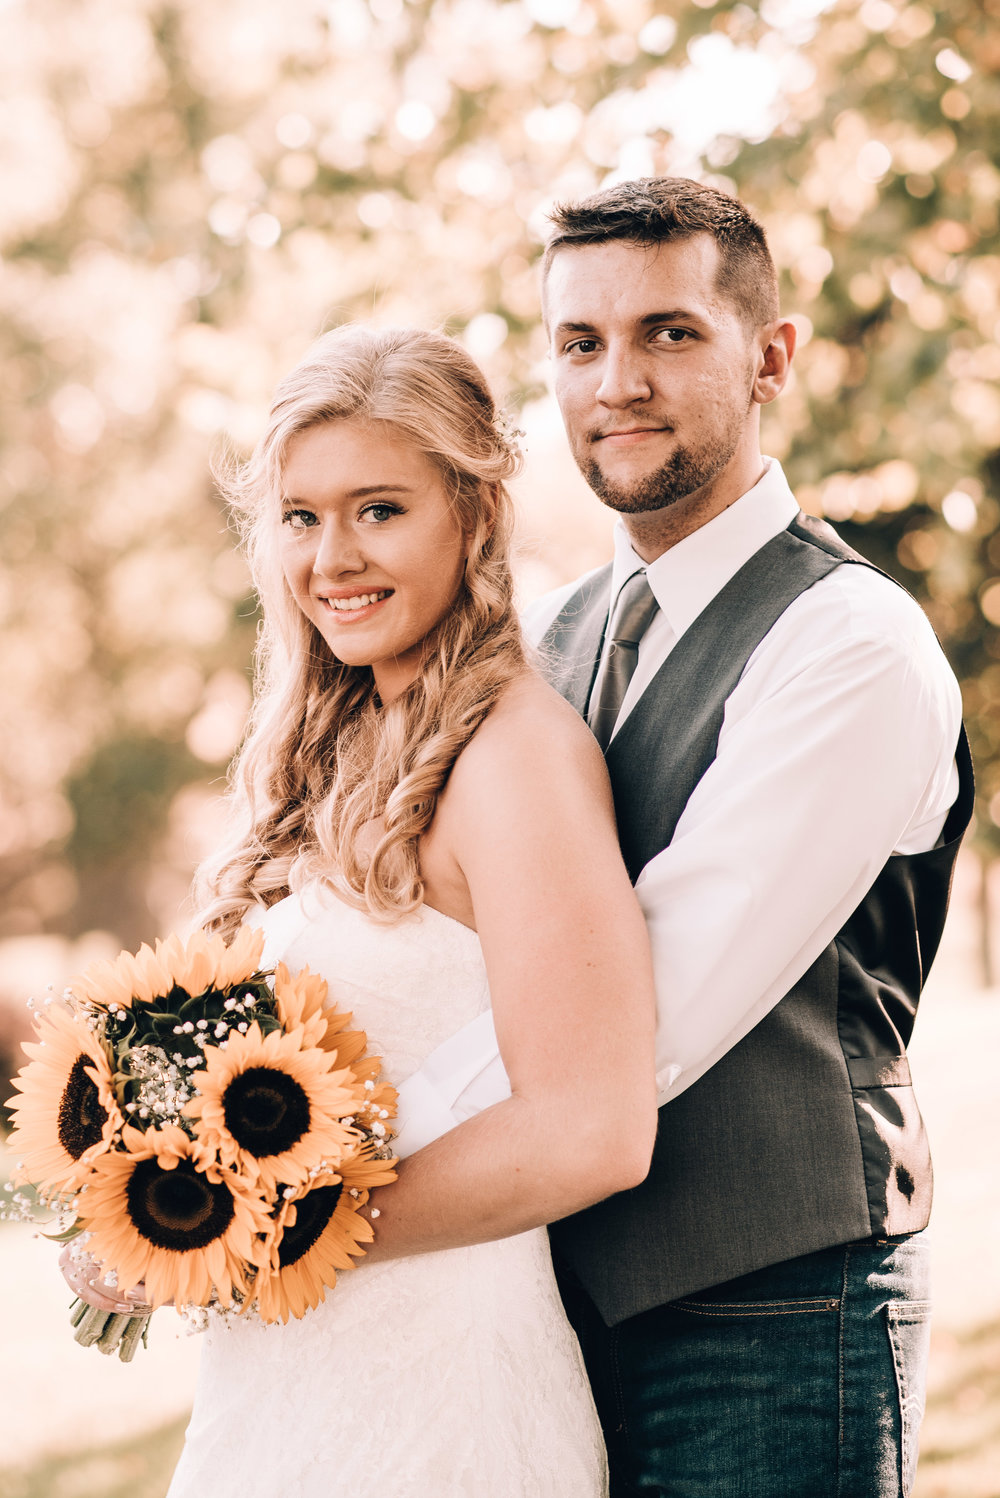 JordanWhitneySept.22.2017_Bride&Groom-12.jpg